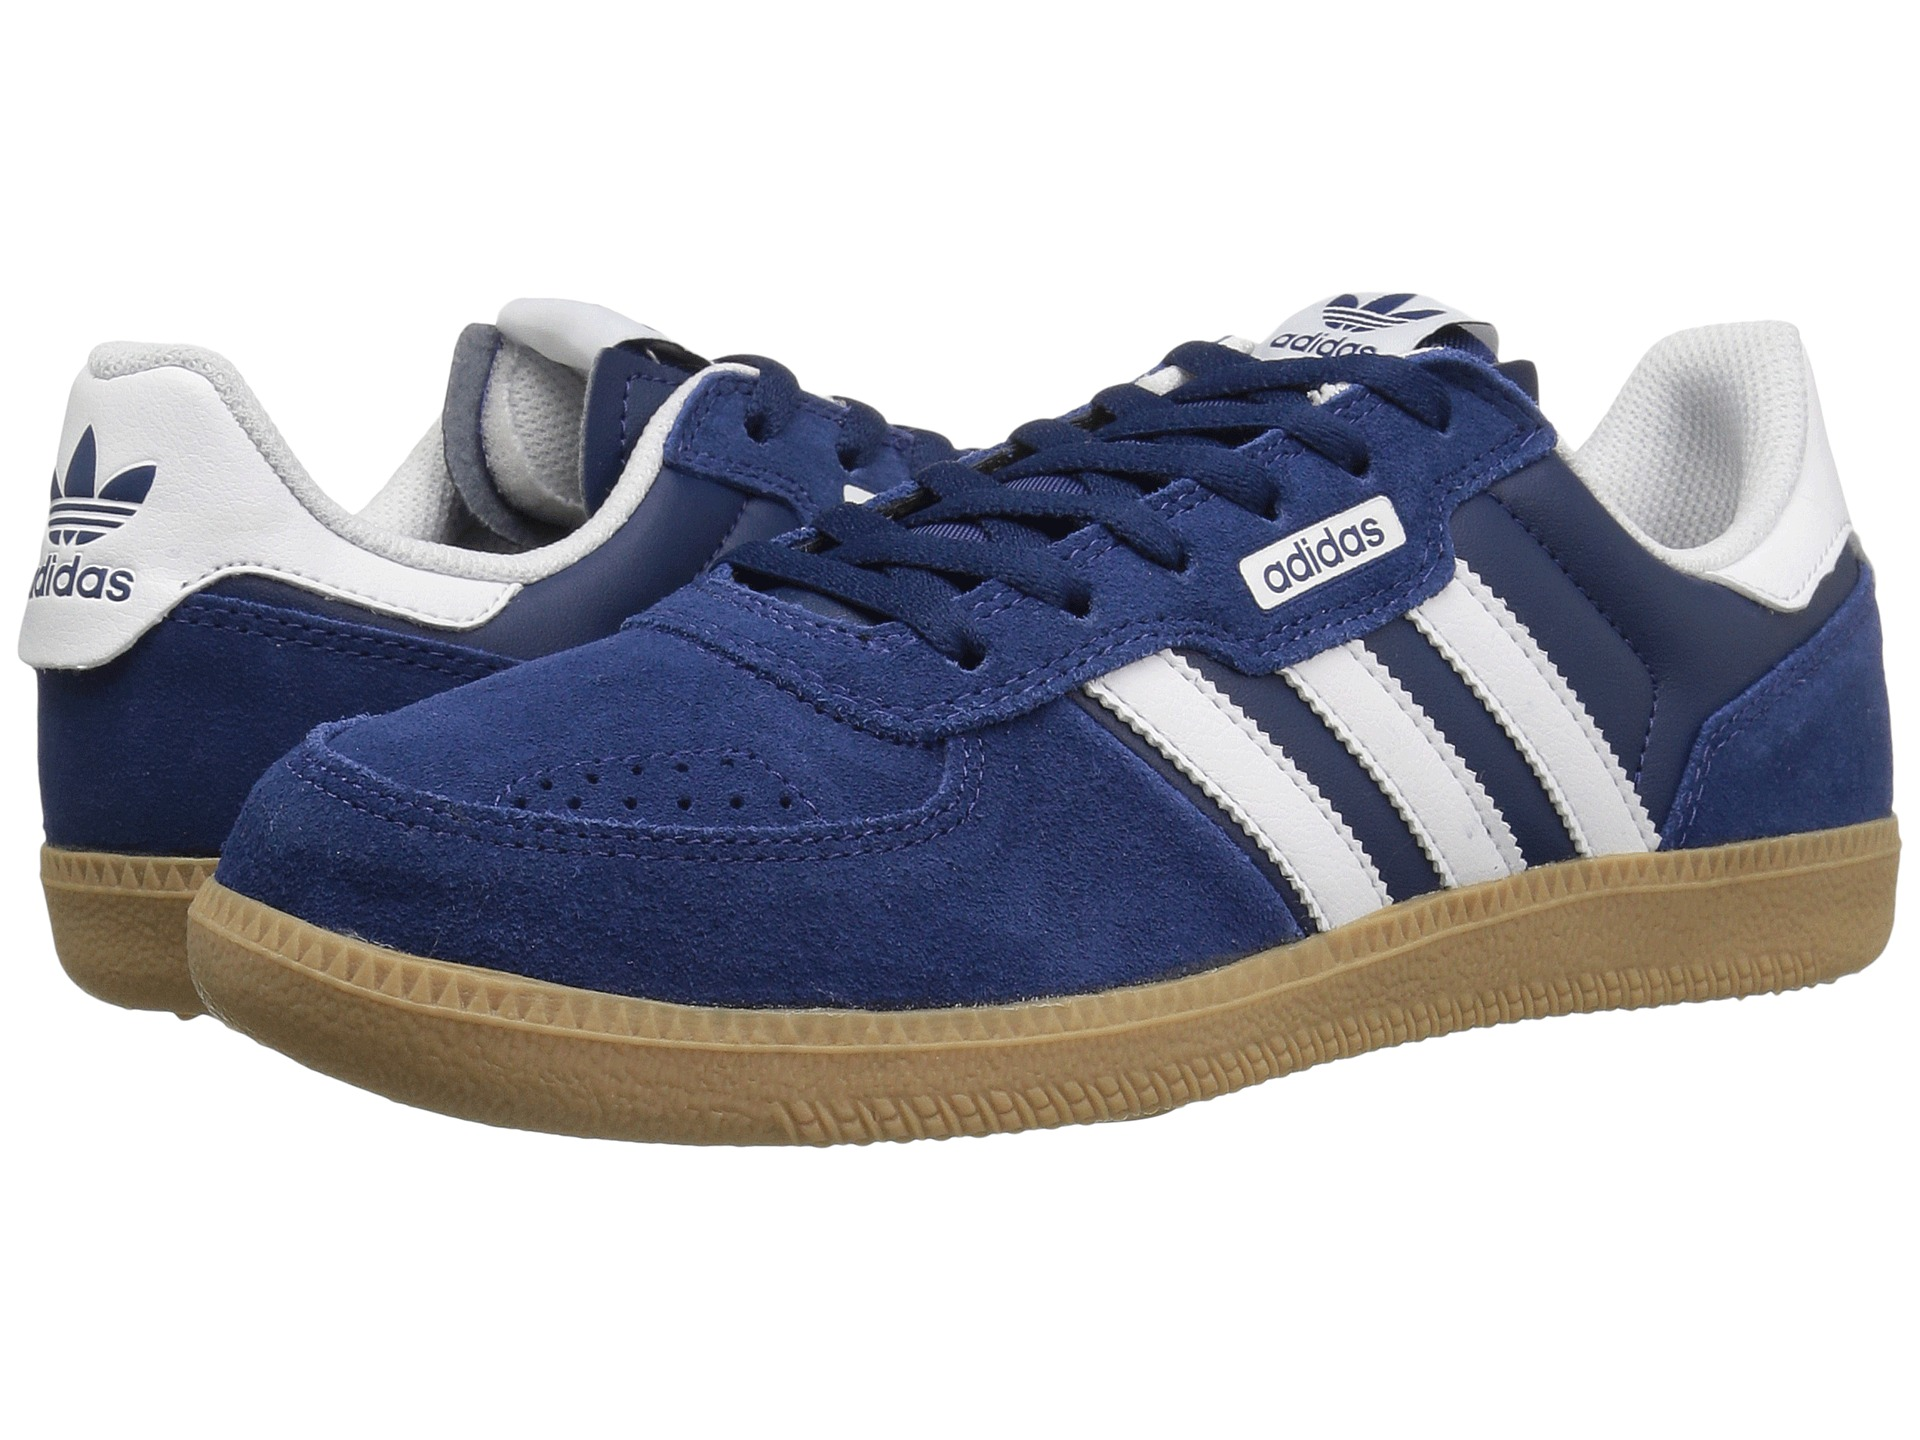 adidas Skateboarding Leonero at 6pm.com